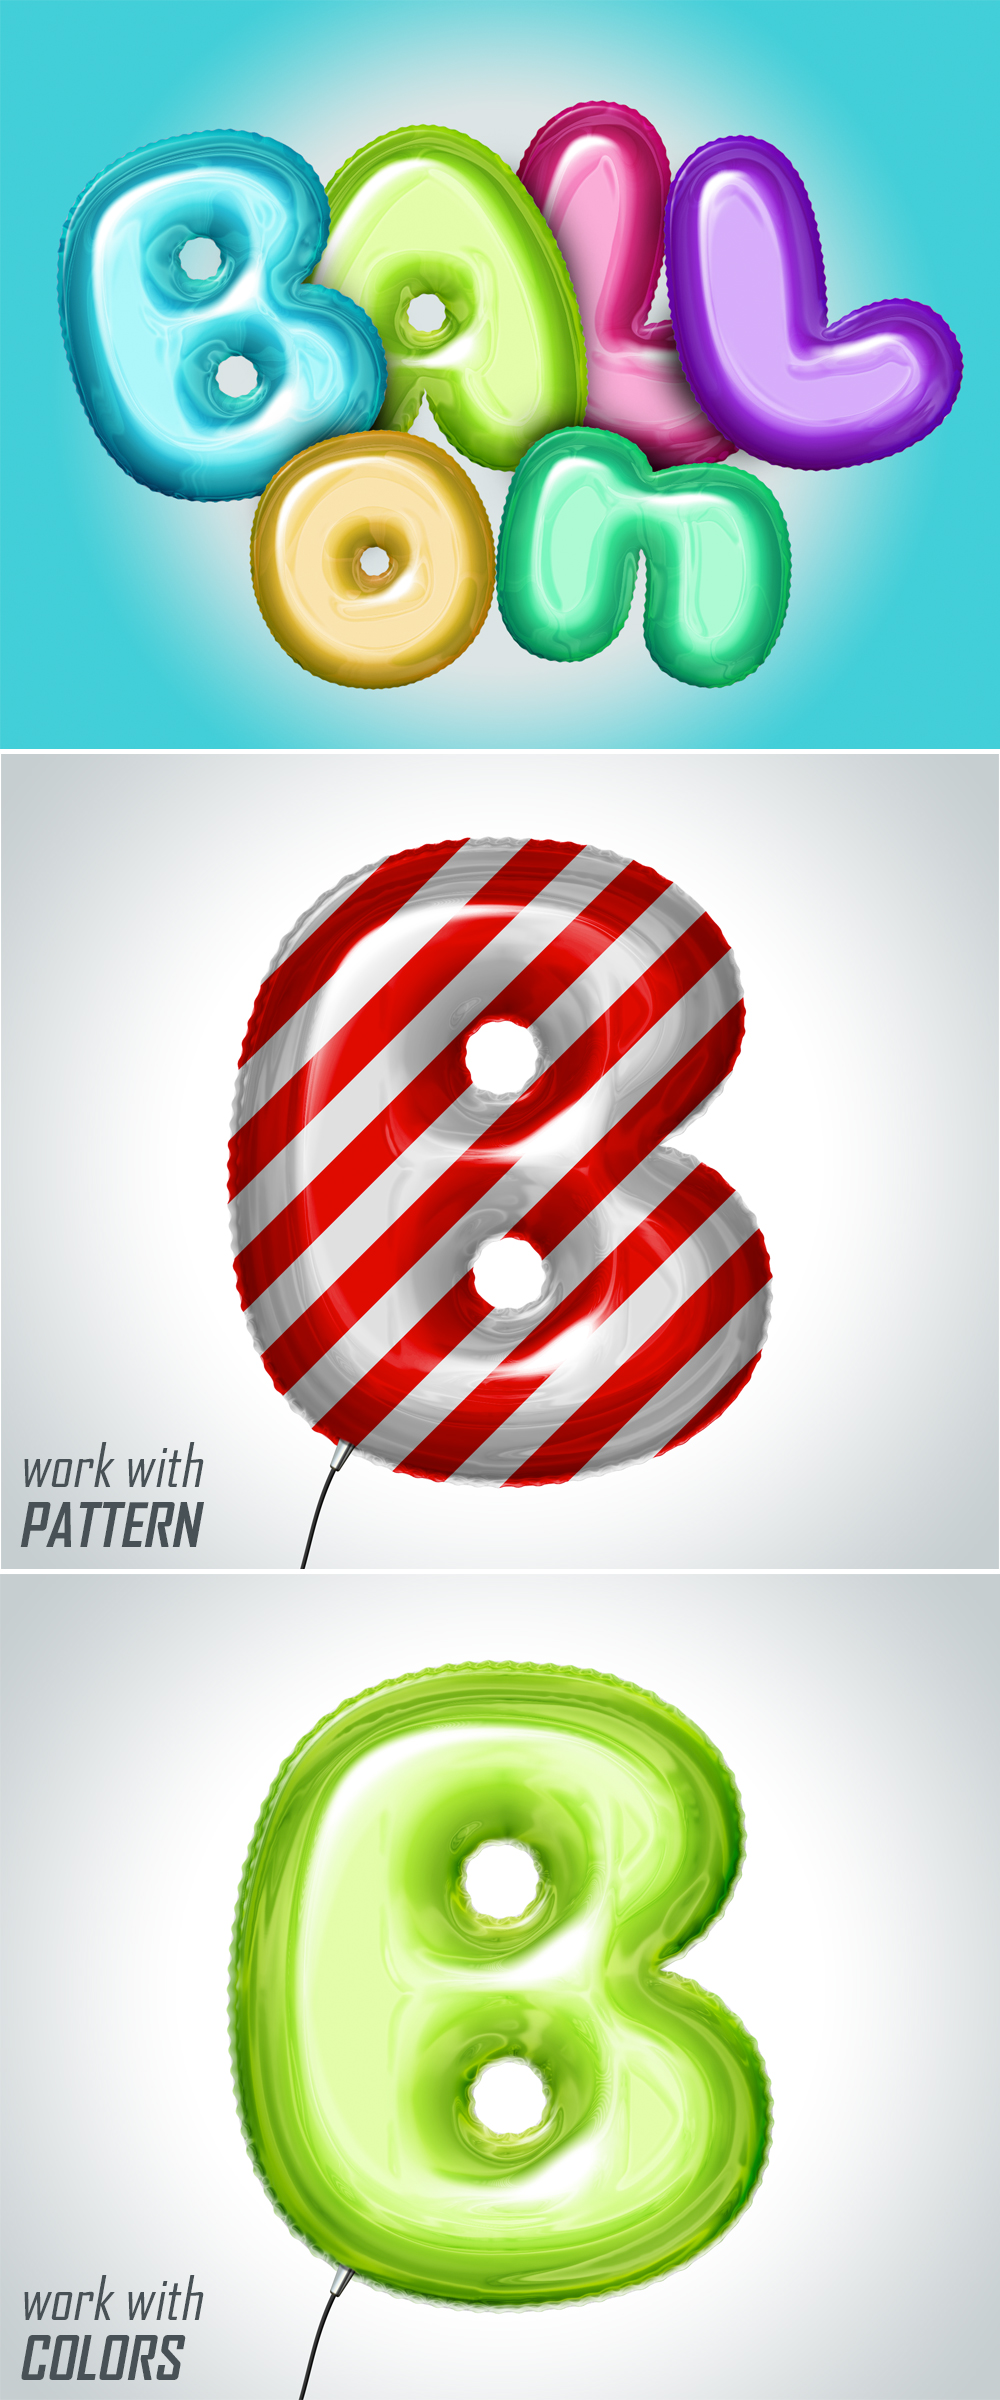 The Balloon Effect For Creative Designers 1